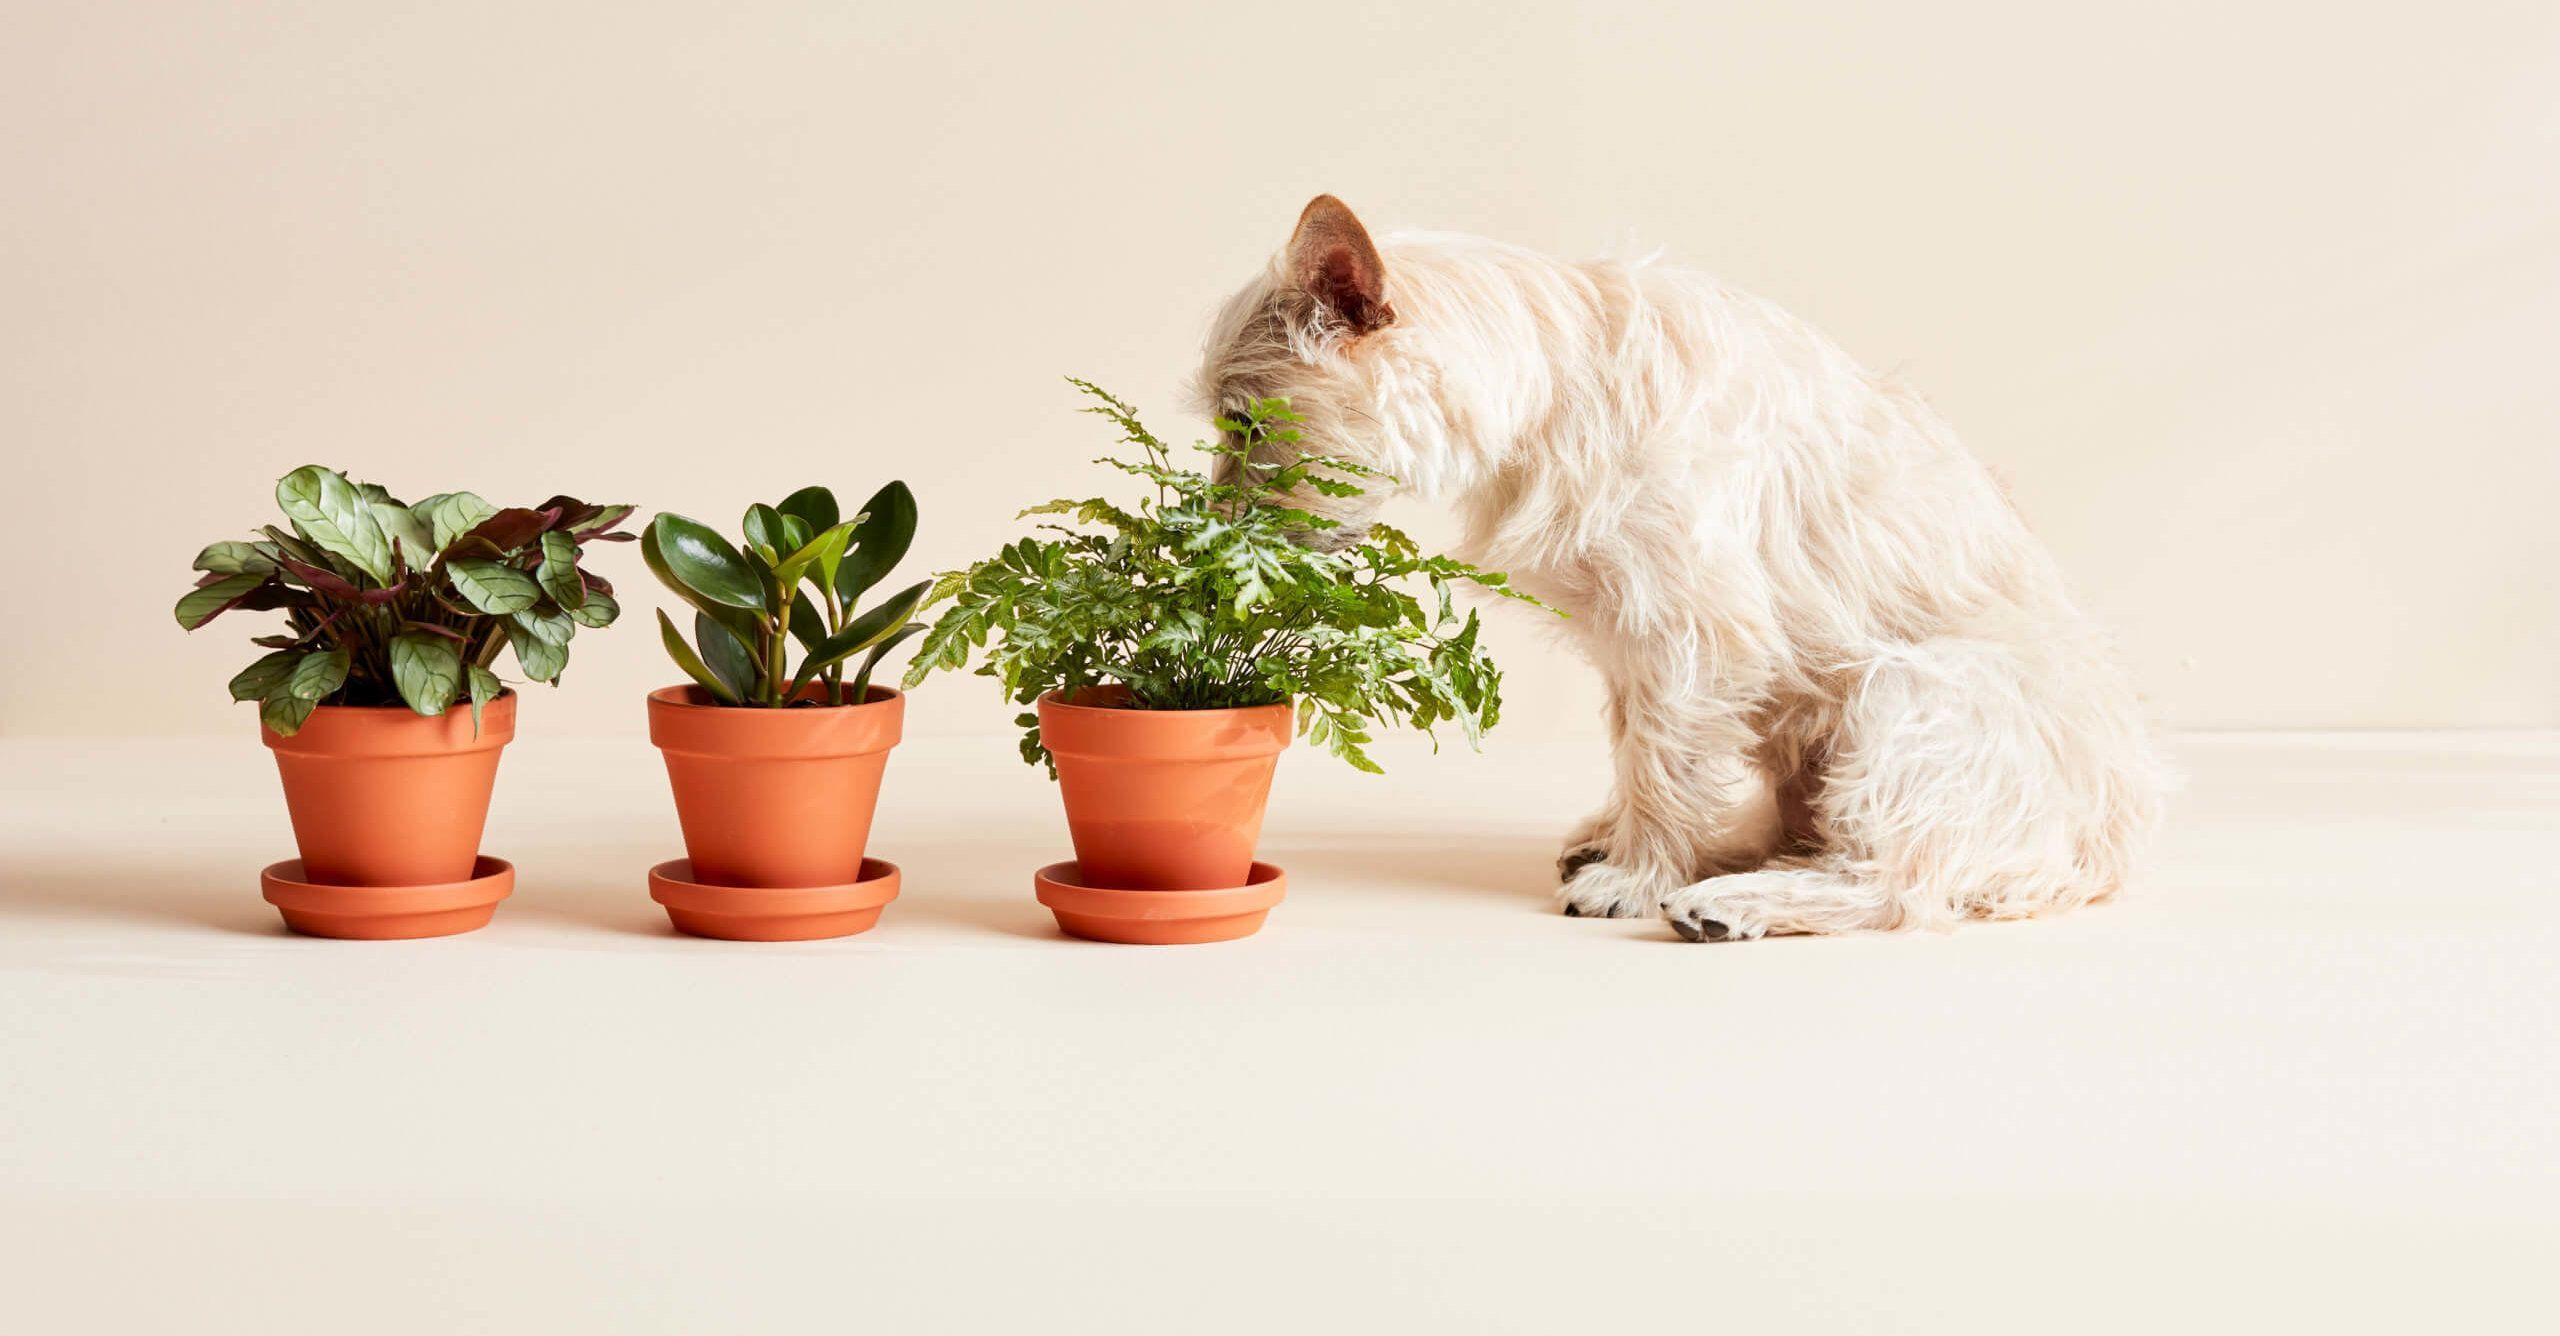 10 Best Non Toxic Houseplants That Are Safe For Children Cats Dogs My Tasteful Space Safe House Plants Plants Pet Friendly House Plants Indoor